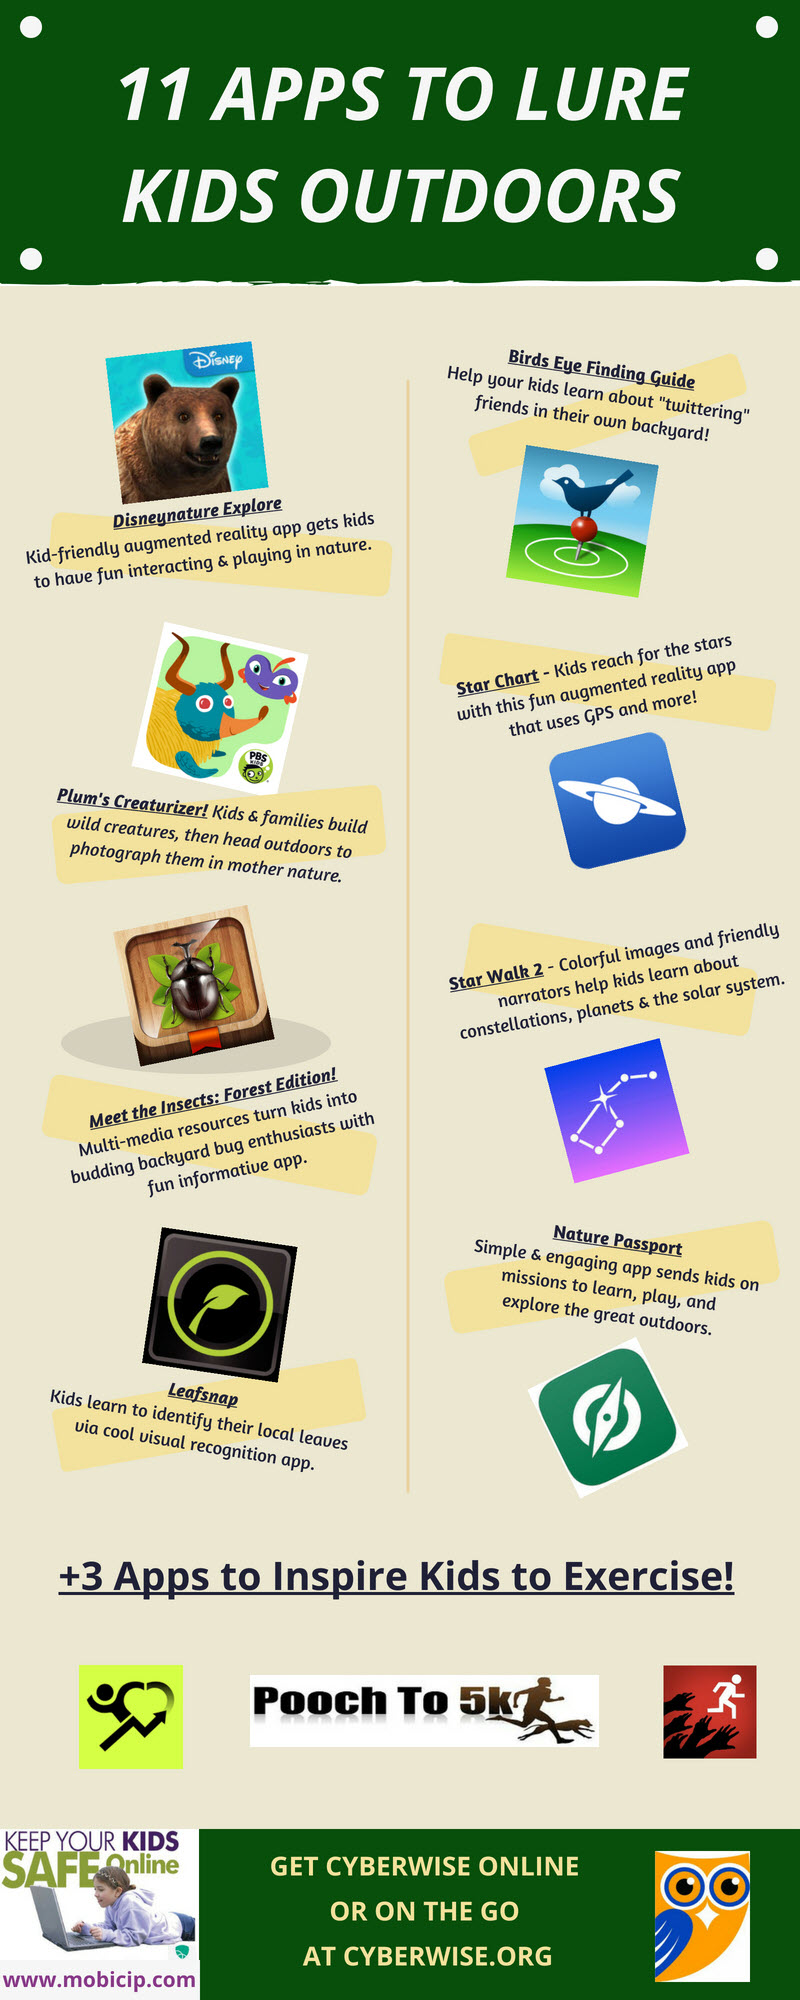 Infographic on how to encourage kids to spend time outdoors using apps